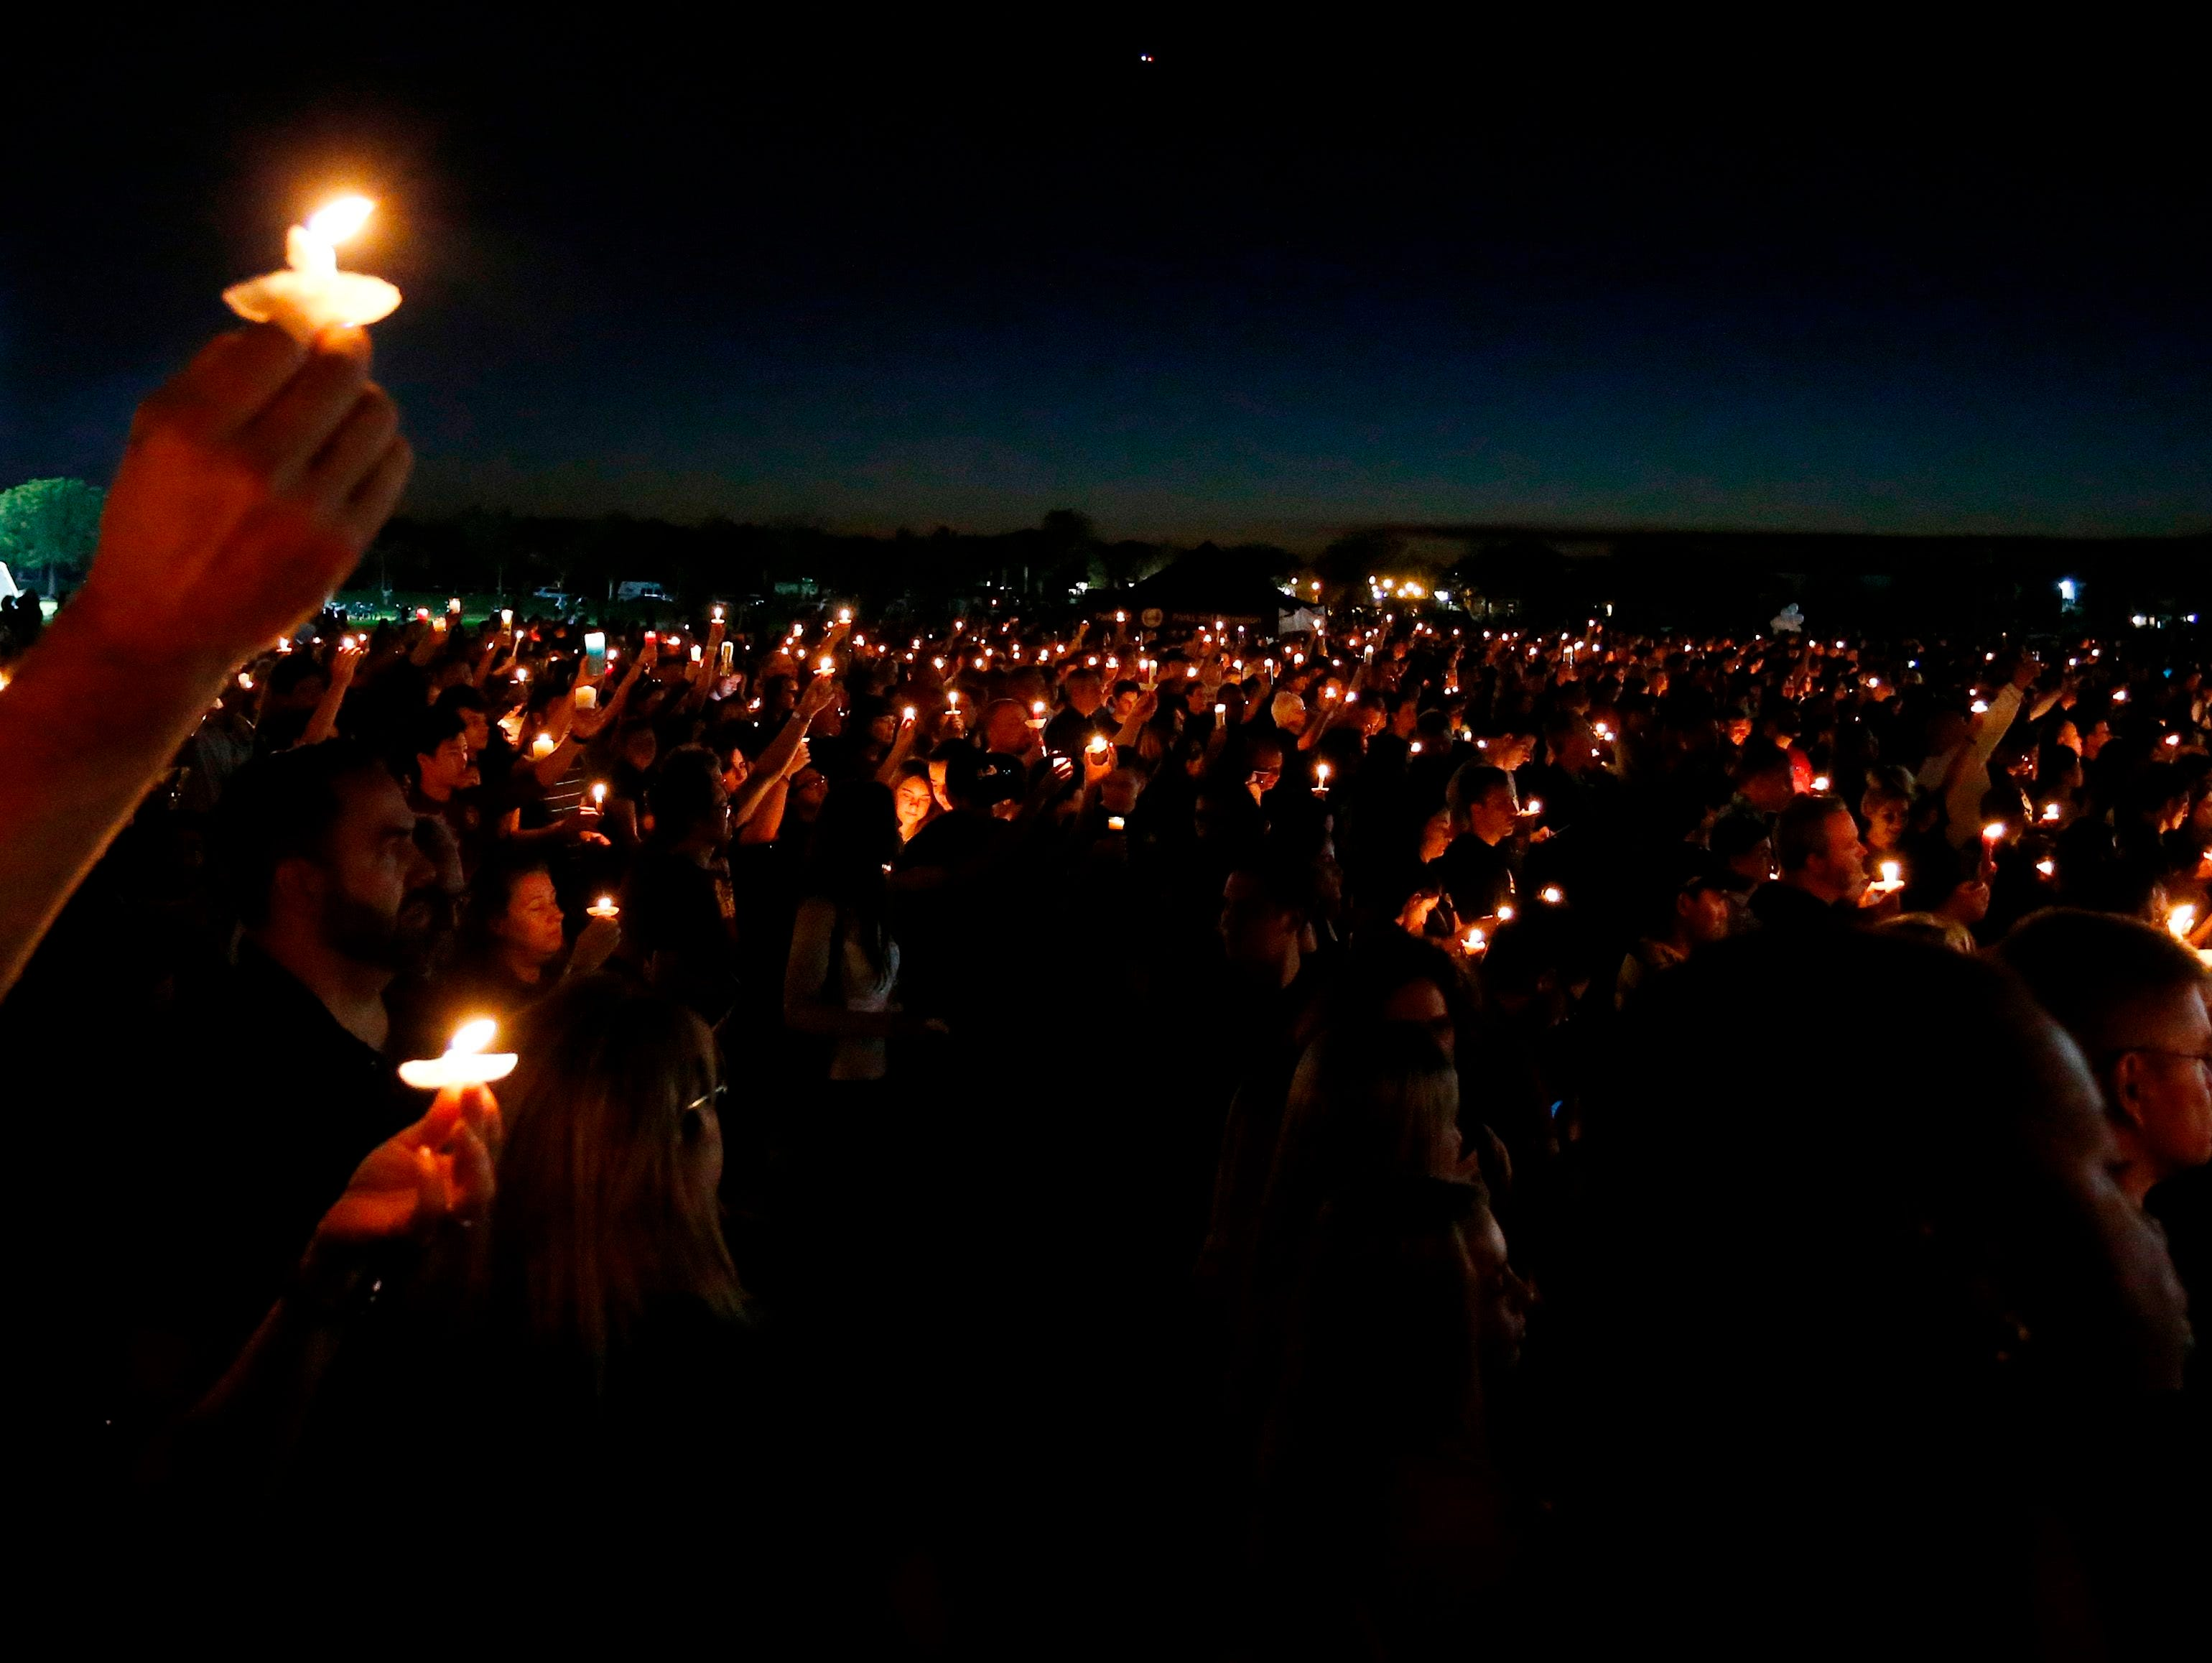 Thousands of mourners hold candles during a candlelight vigil for the victims of Marjory Stoneman Douglas High School shooting in Parkland, Florida on February 15, 2018.